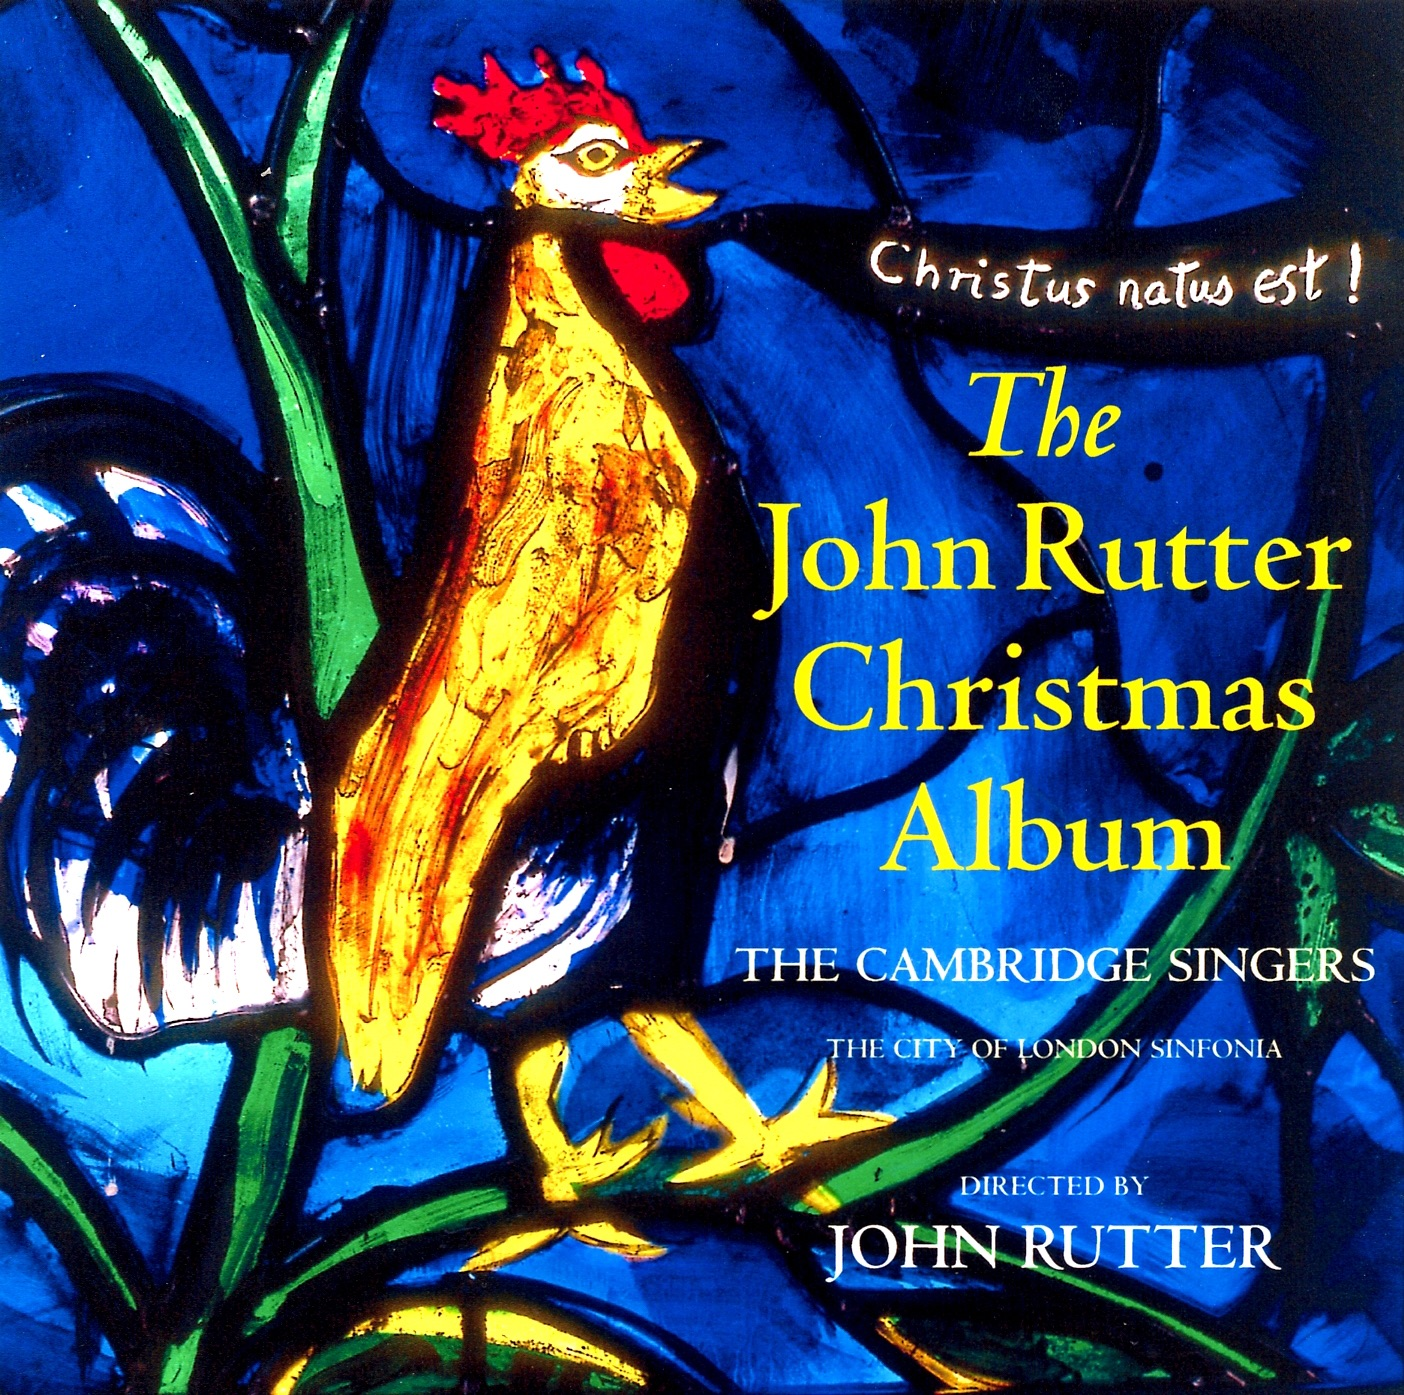 John Rutter , Cambridge Singers, The , City Of London Sinfonia - The Choral Collection